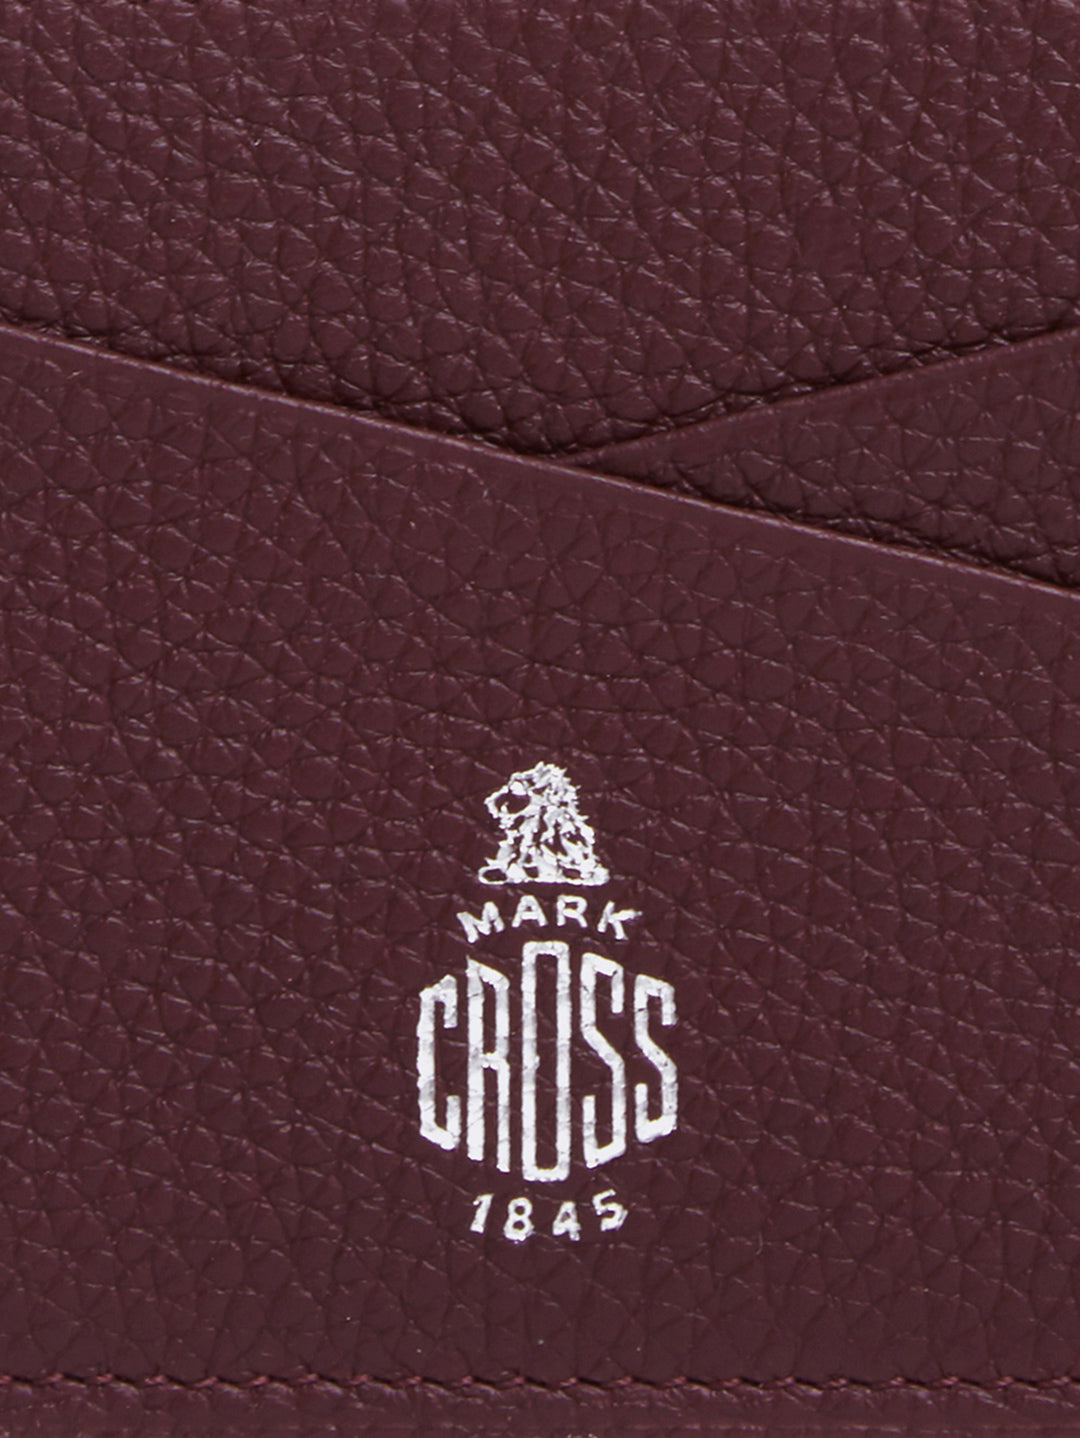 Mark Cross Leather Card Case Tumbled Grain Bordeaux Detail